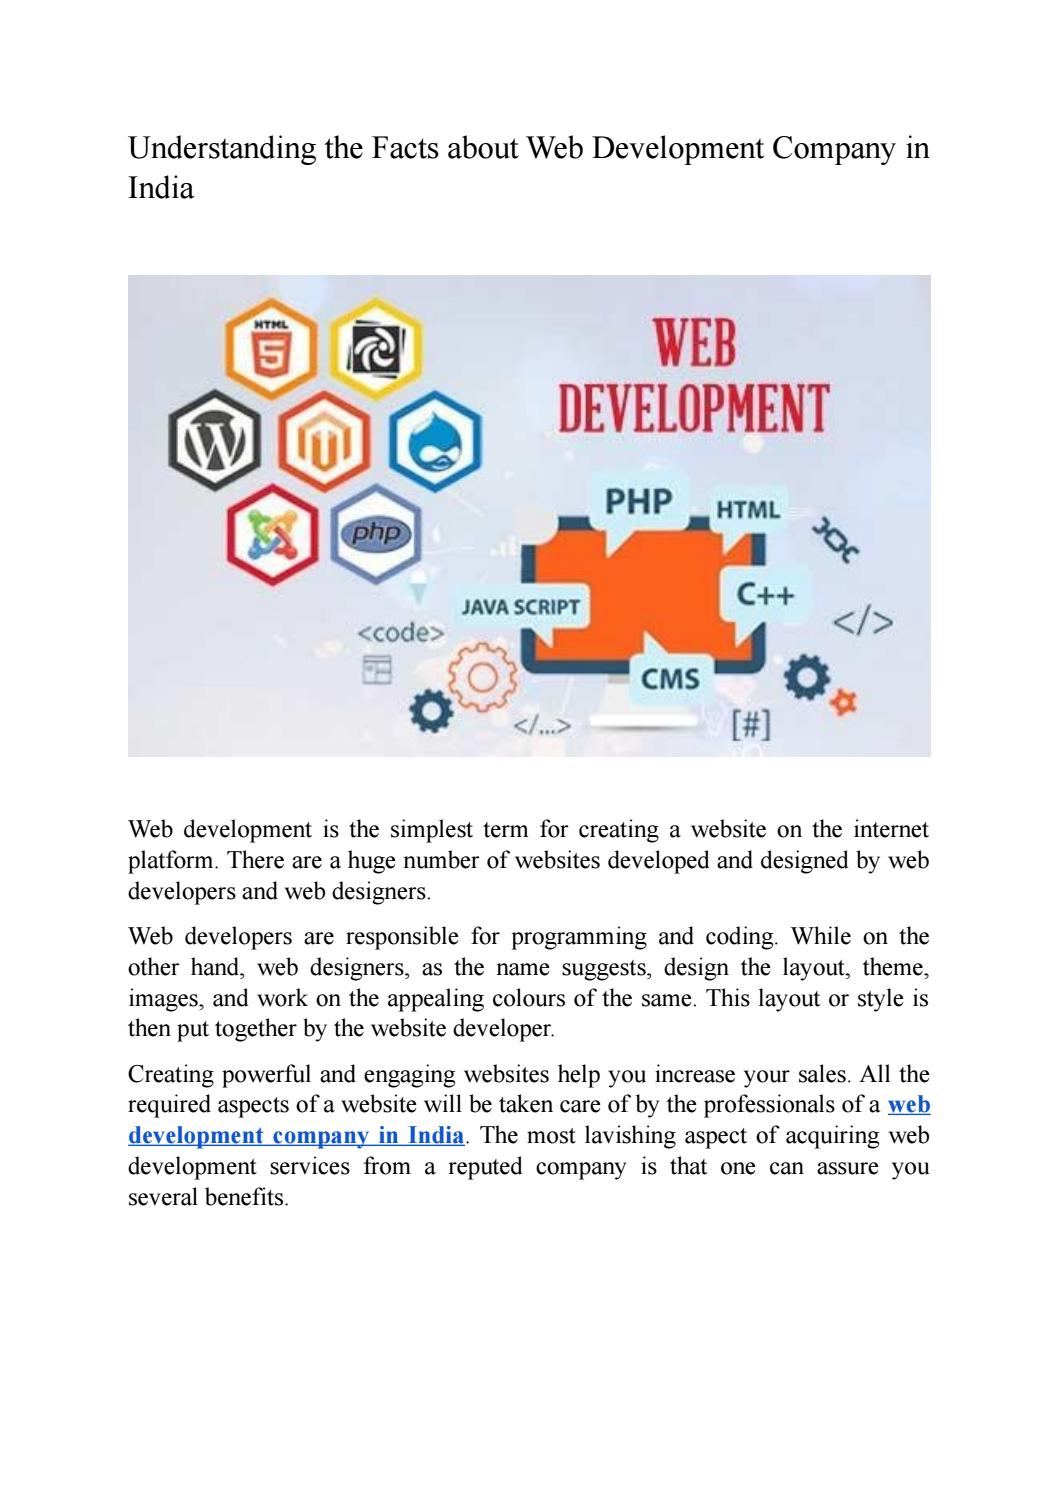 Understanding the Facts about Web Development Company in India